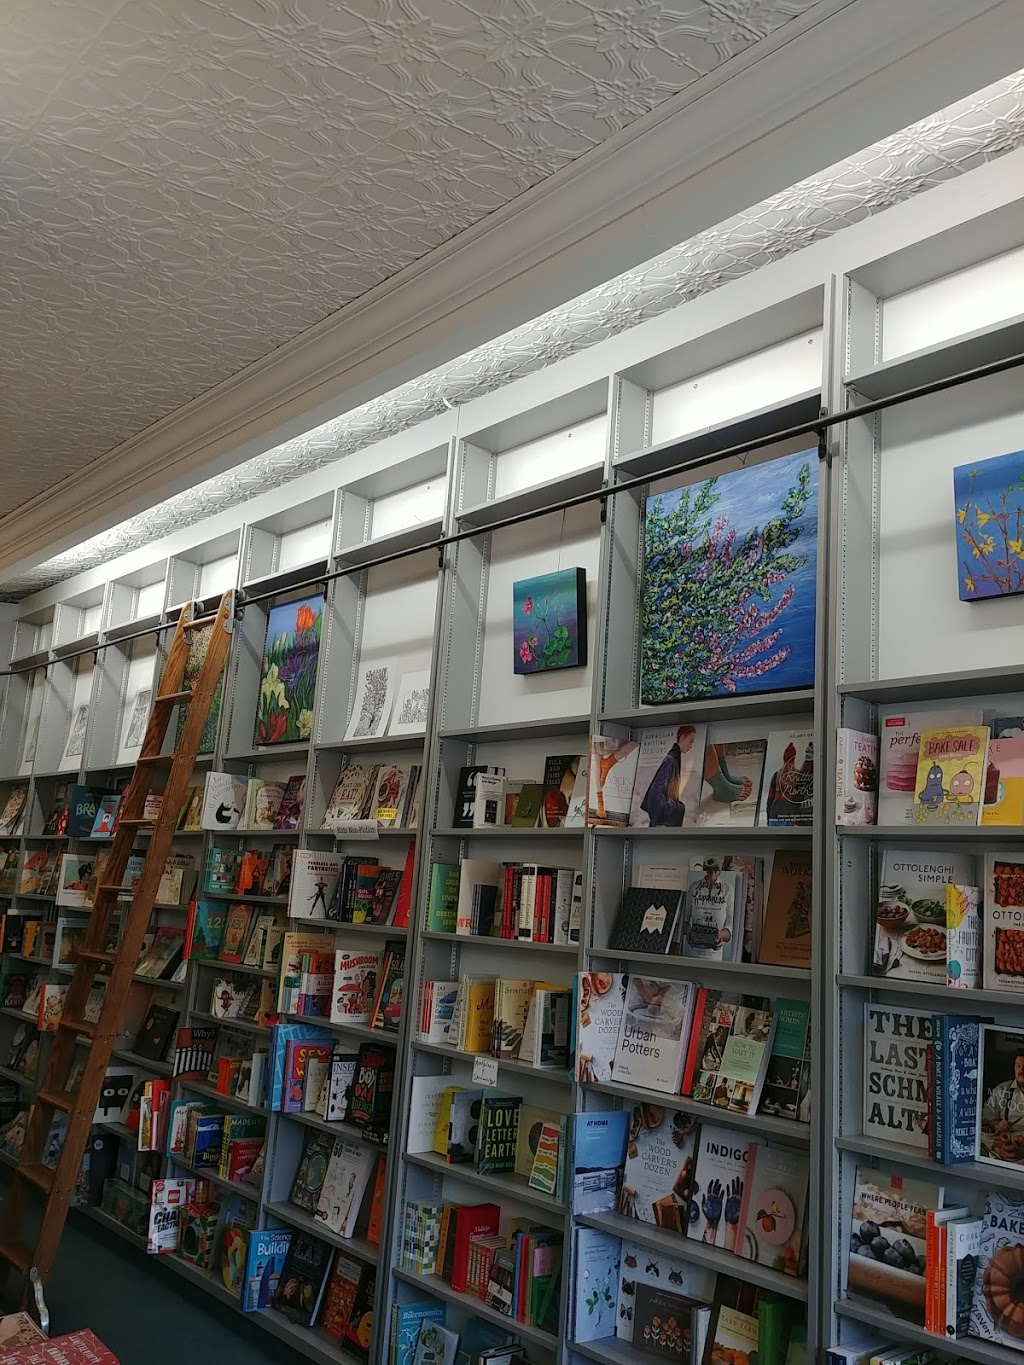 King W. Books | book store | 1060 King St W, Hamilton, ON L8S 1L7, Canada | 9055272442 OR +1 905-527-2442